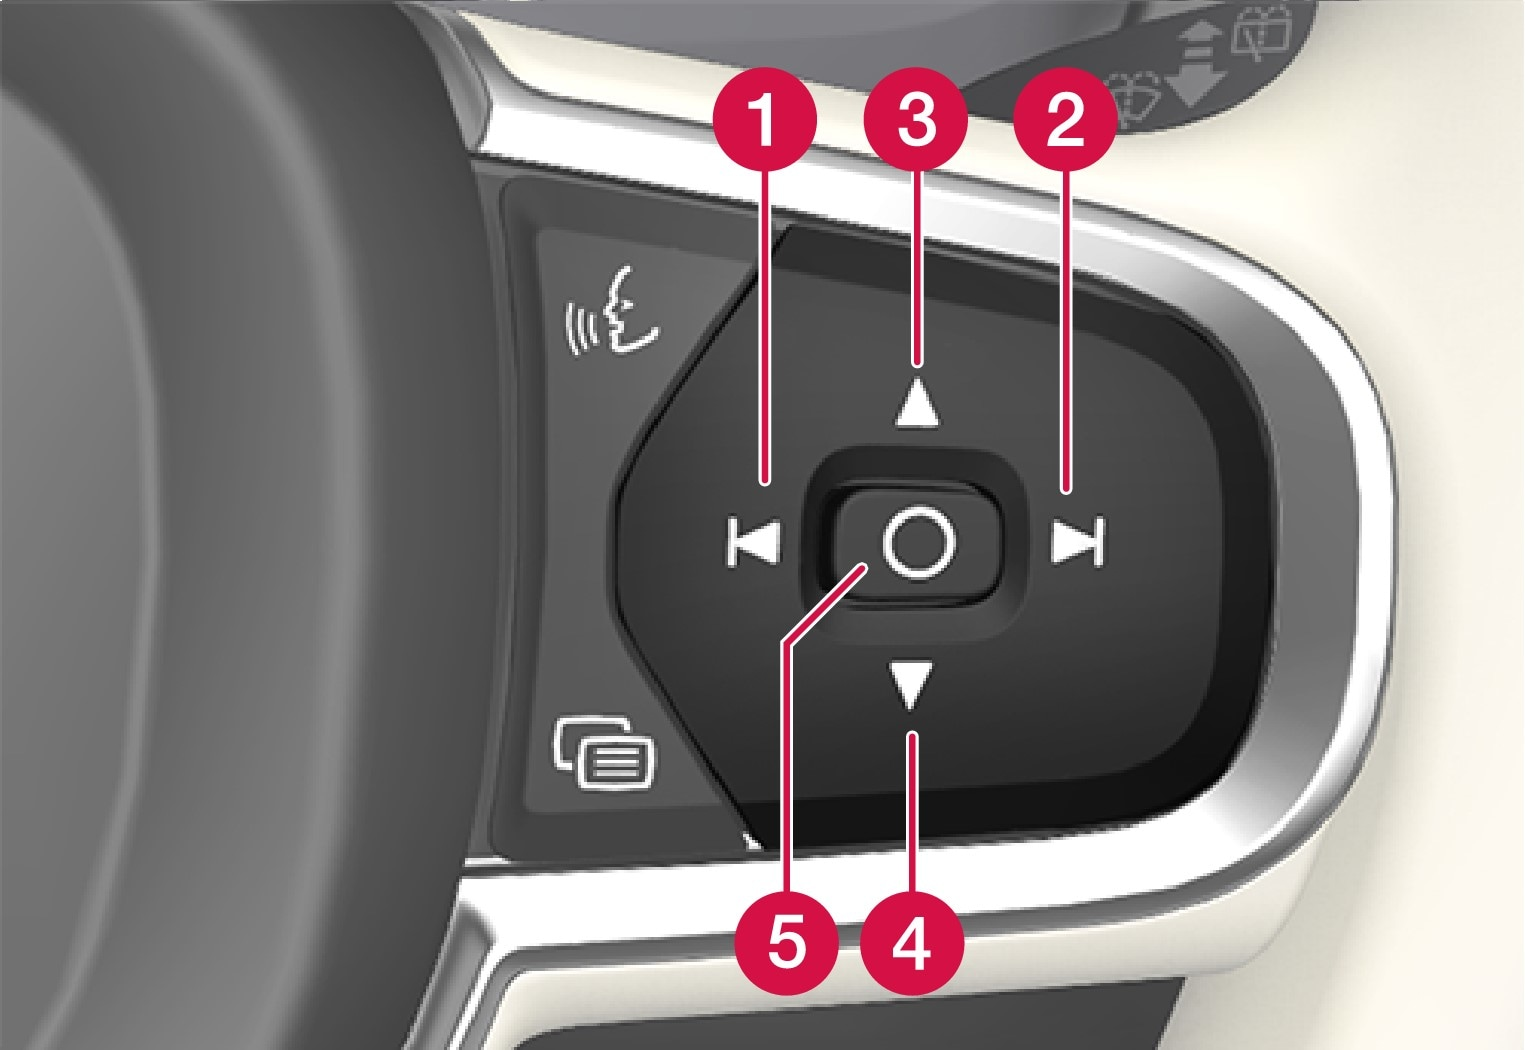 P5 Right steering wheel buttons, HUD